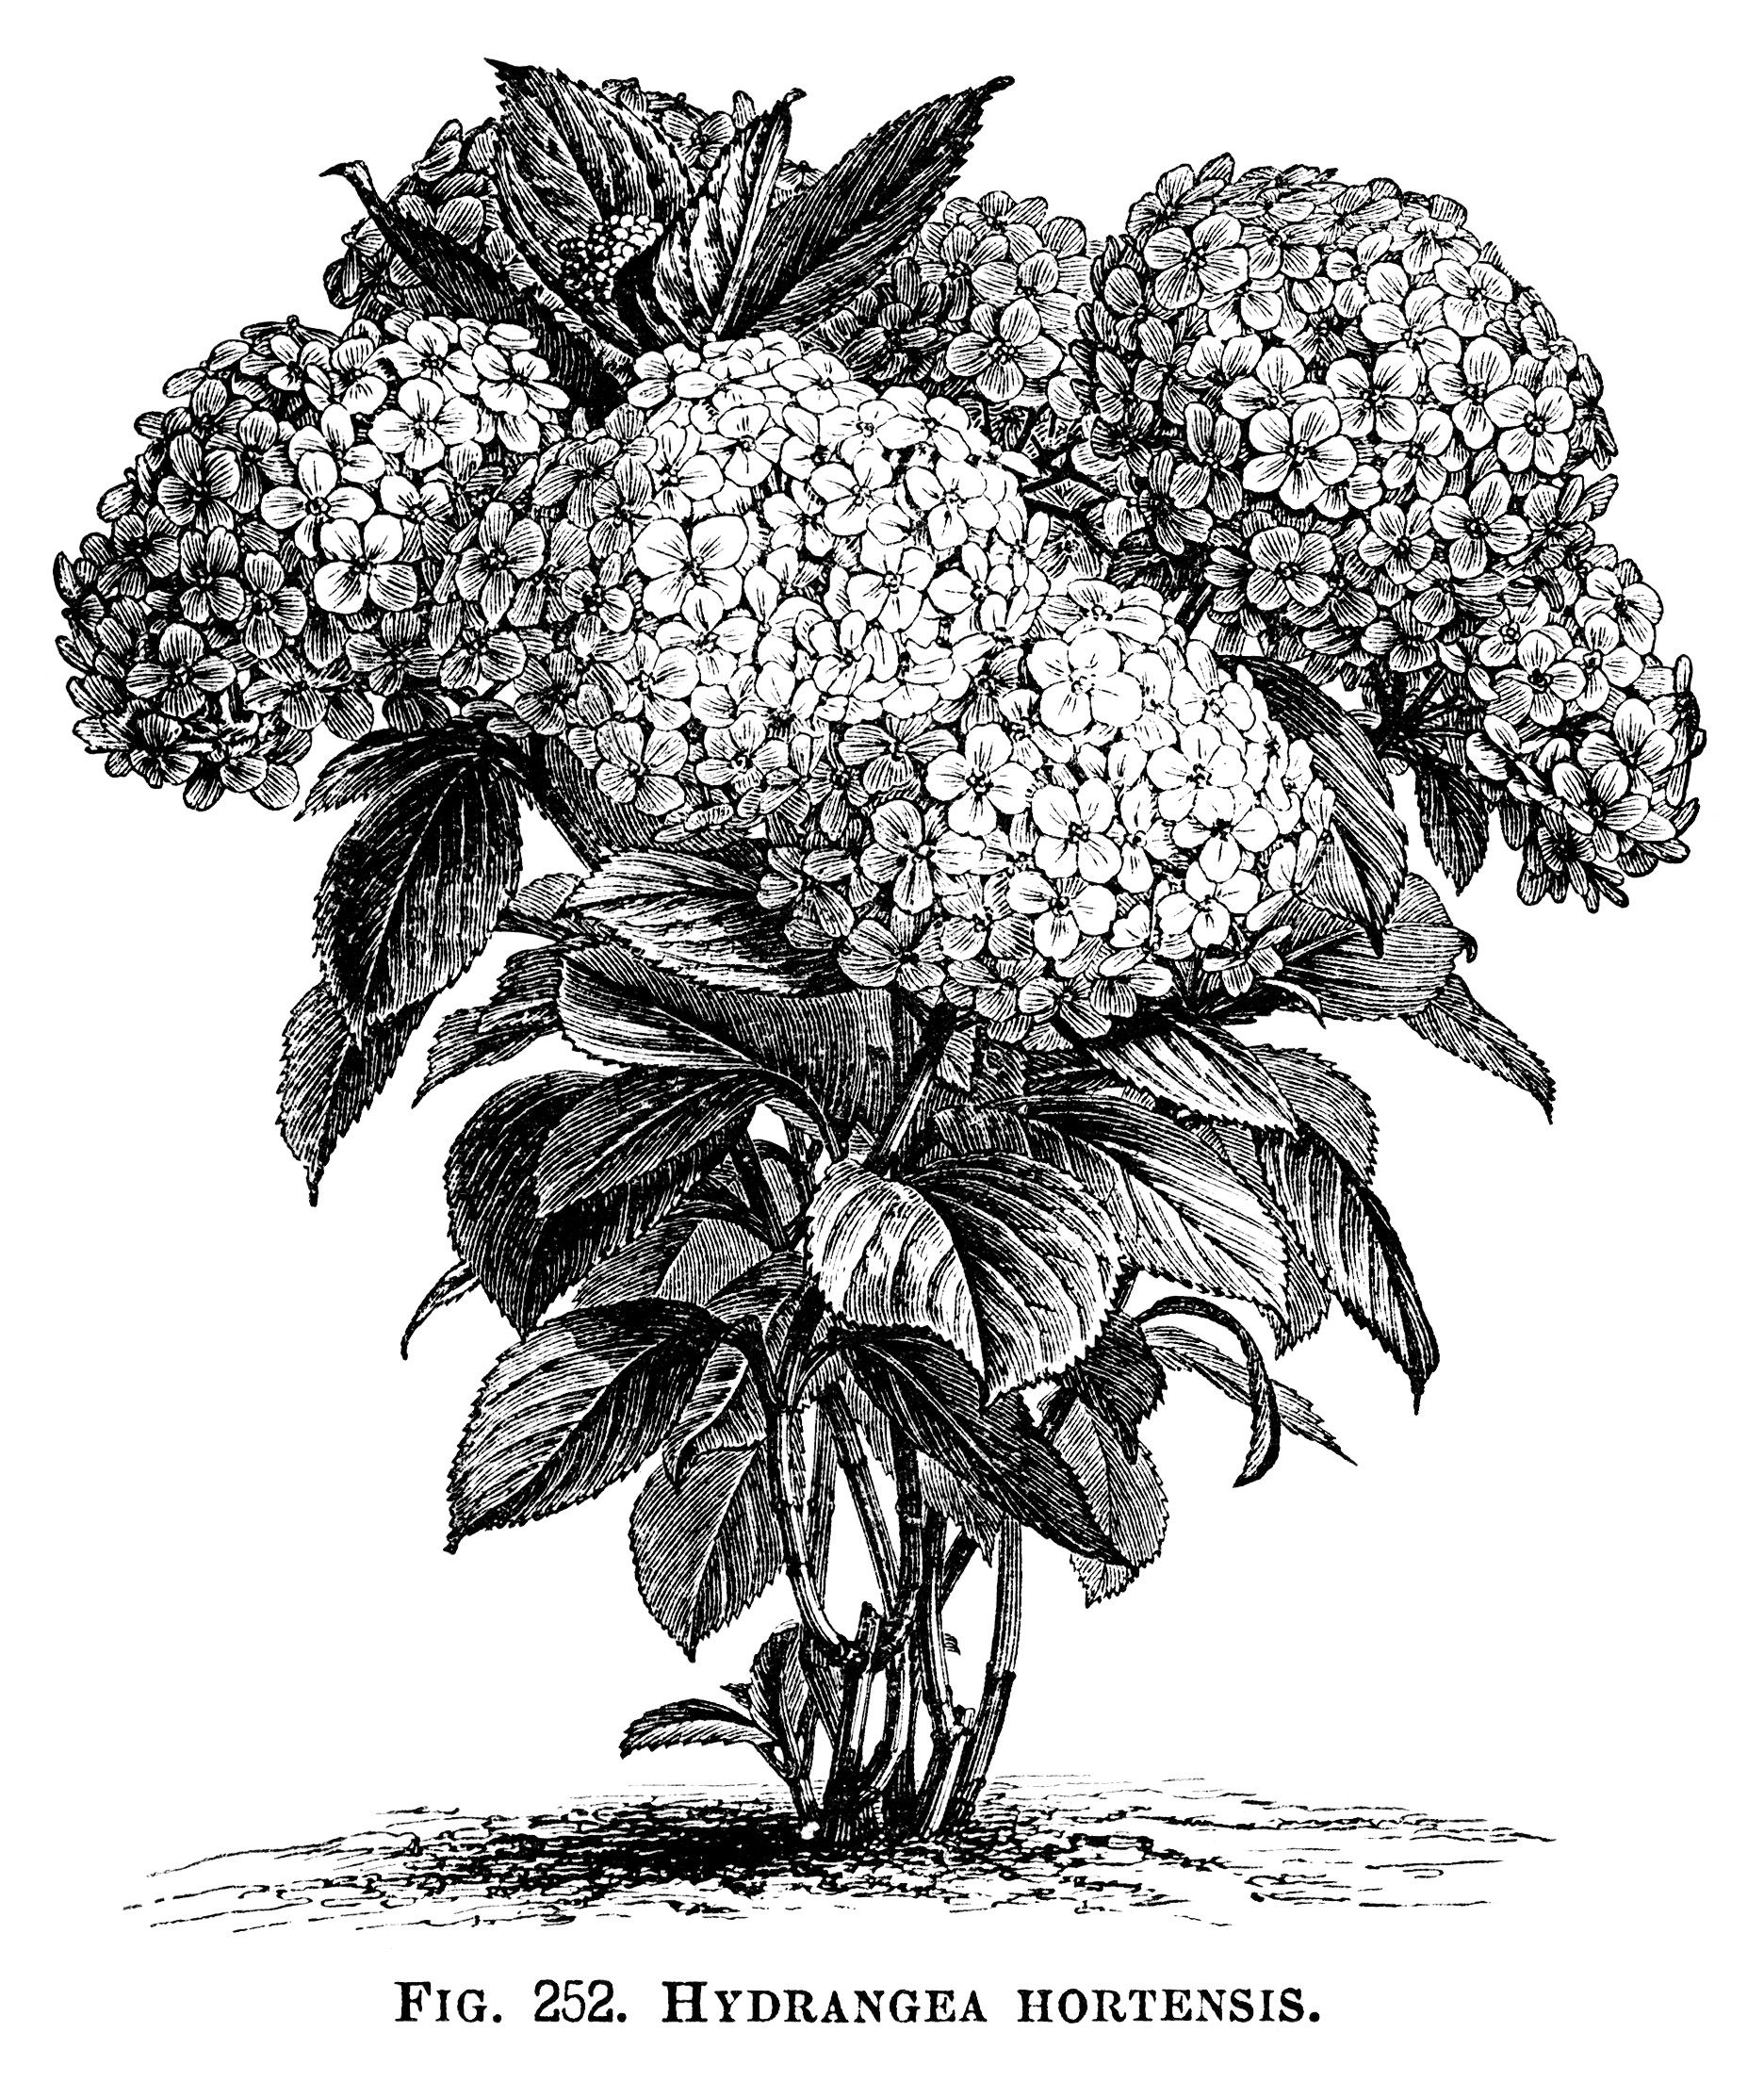 Hydrangea Hortensis, hydrangea flower, black and white graphics, vintage flower illustration, printable floral image